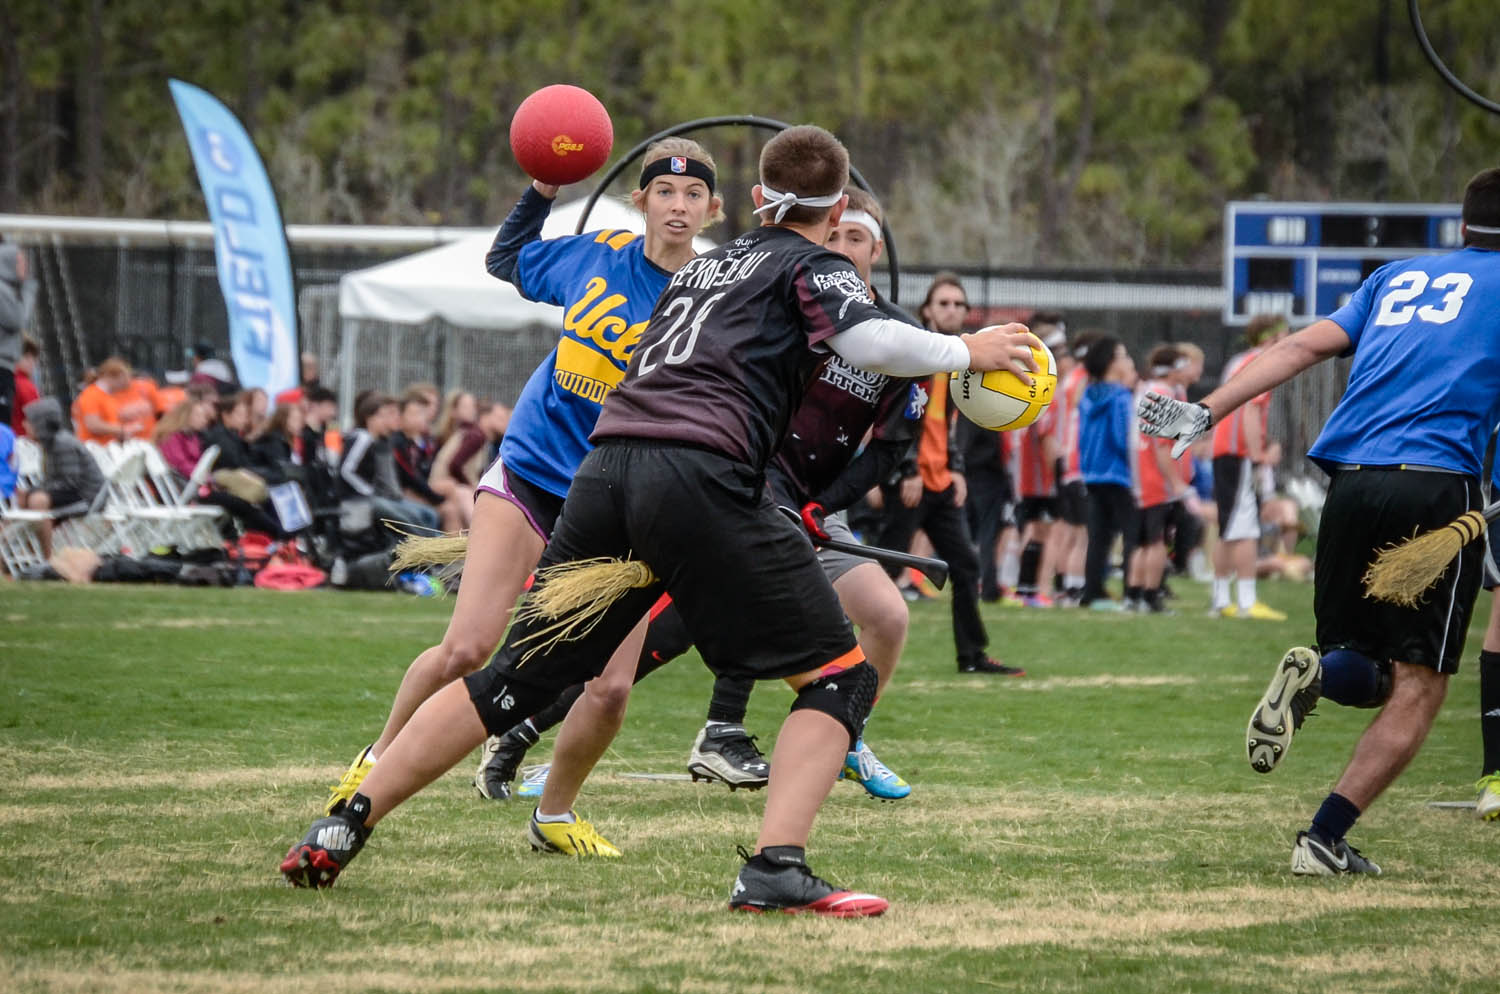 UCLA vs Arkansas at the Quidditch World Cup | © BenHollandPhotography